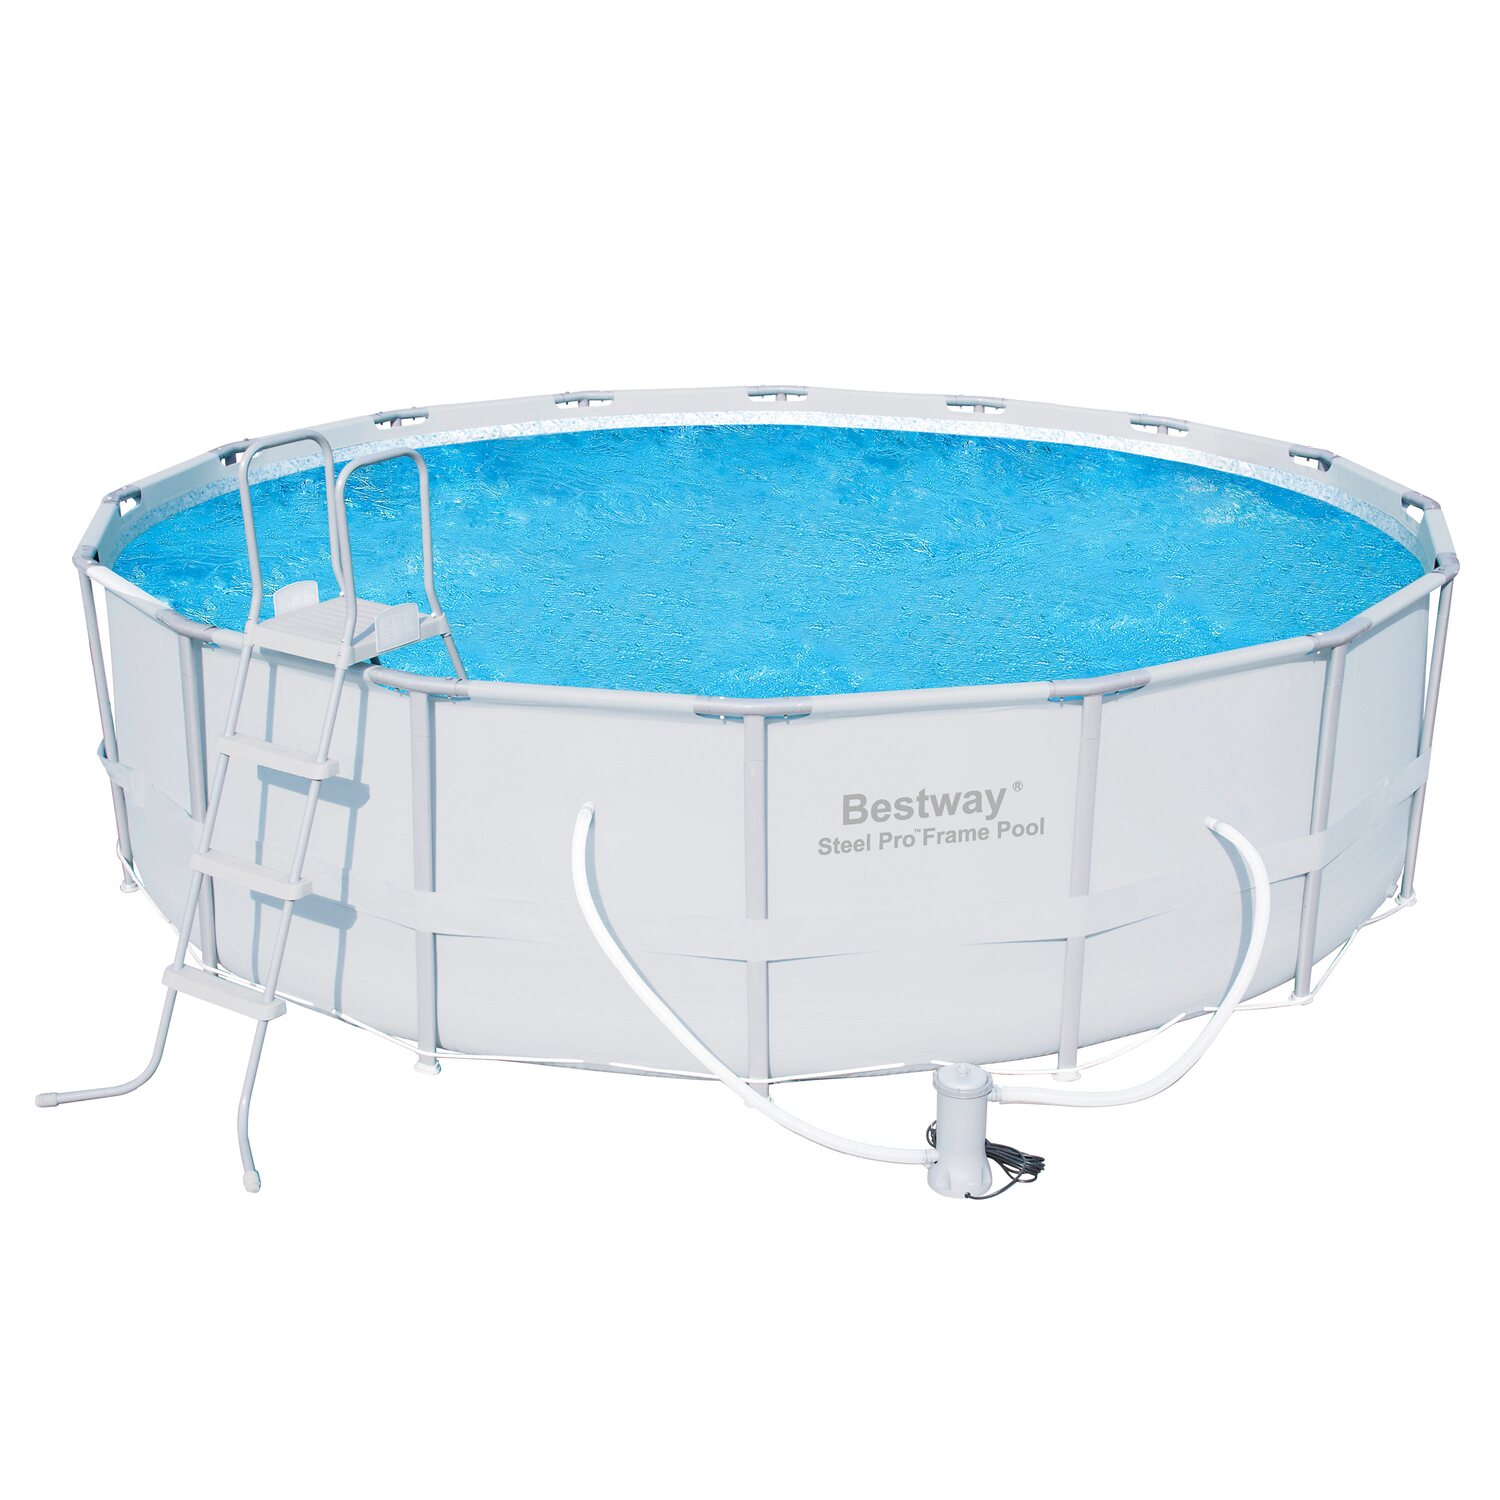 Stahlrahmen pool elegant intex metalframe pool x cm with for Obi filterpumpe